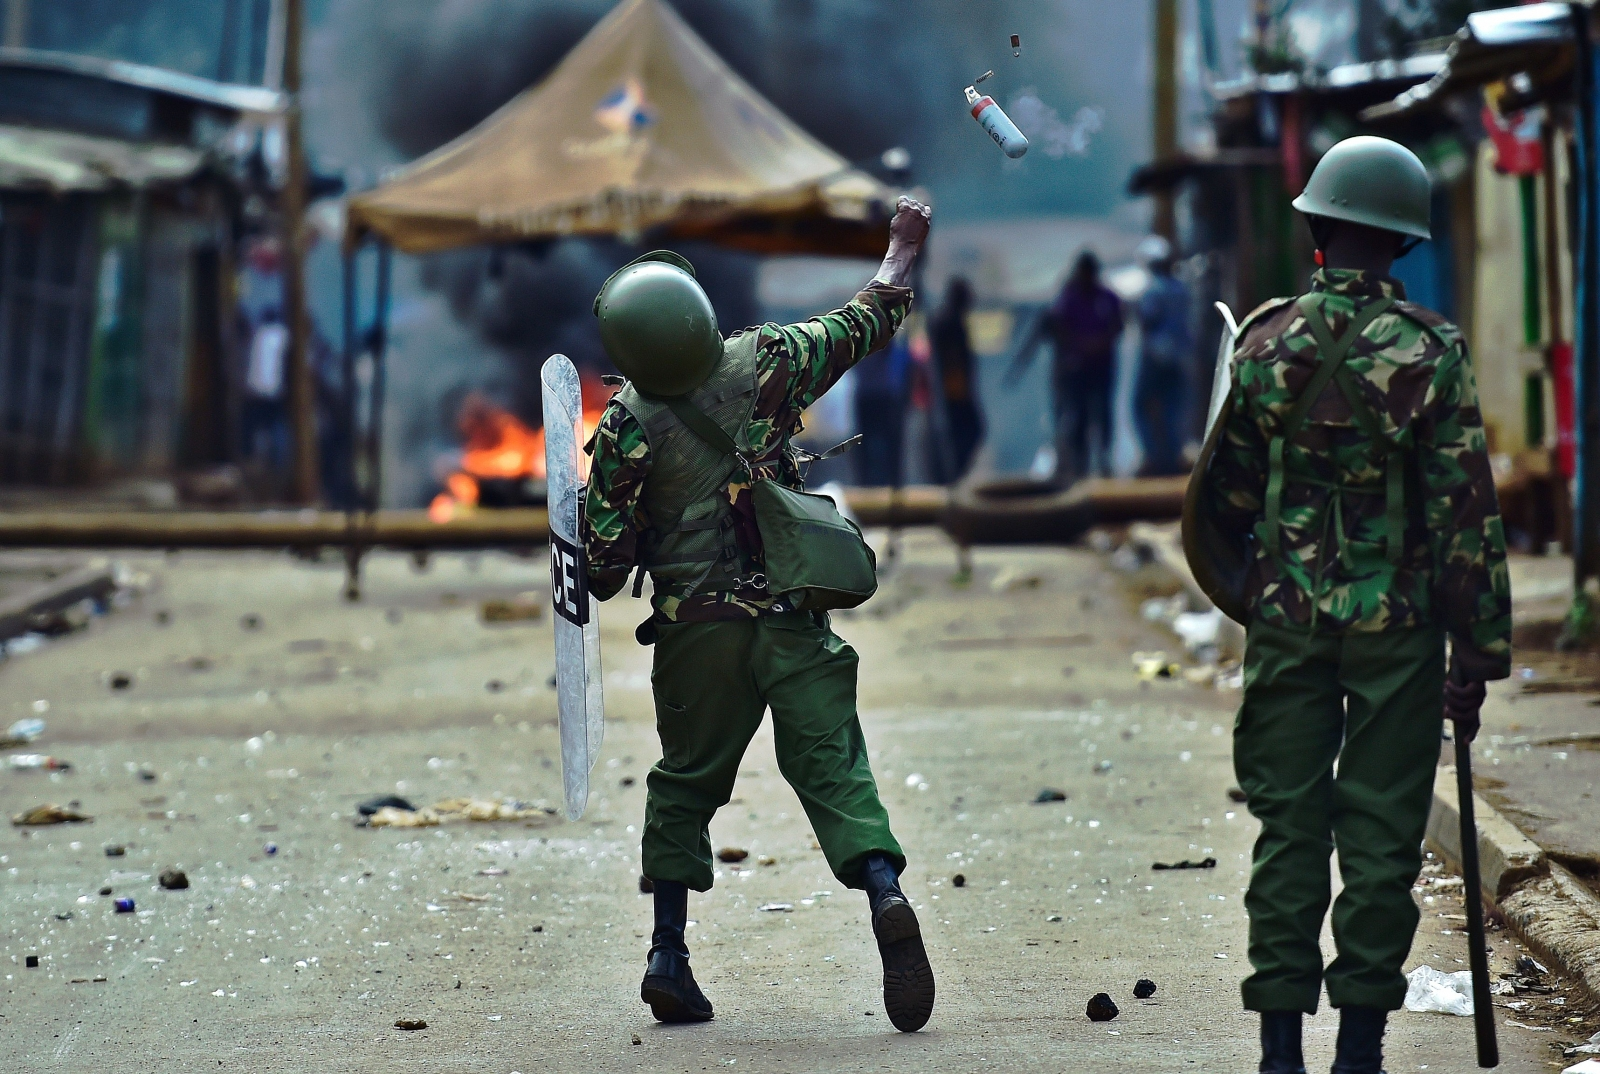 Police throws tear gas during Kenya protest